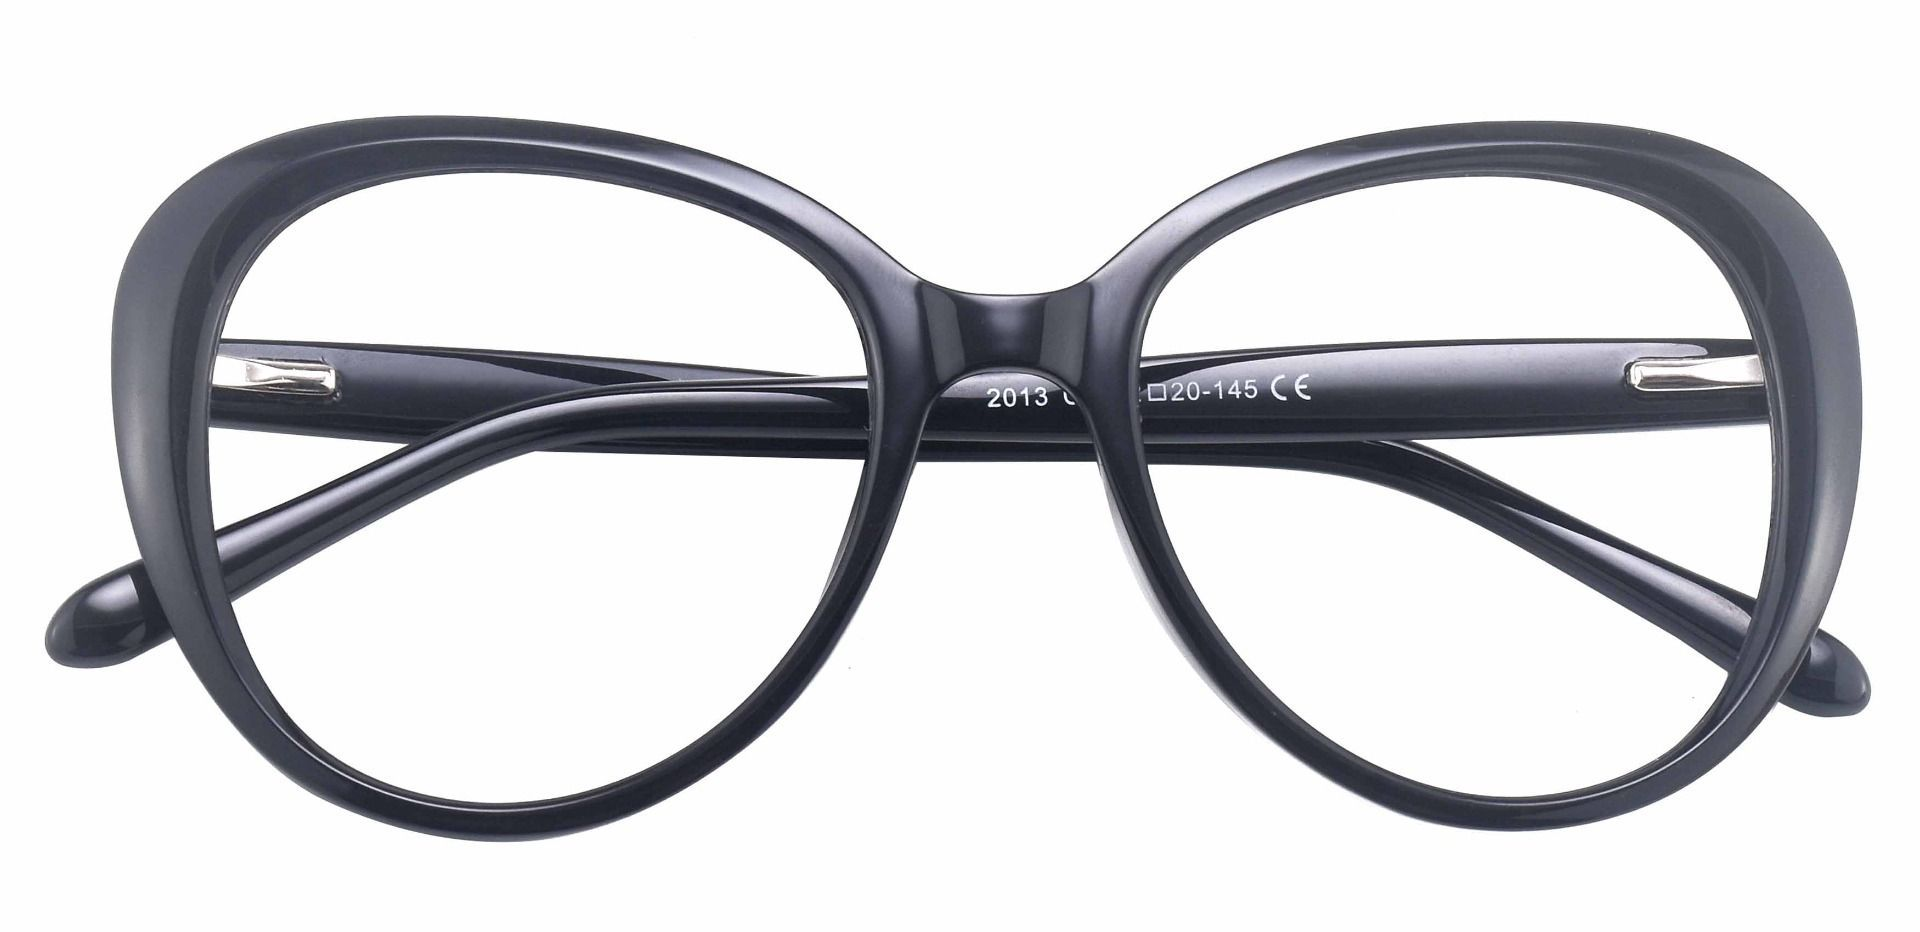 Sheridan Oval Prescription Glasses - Black